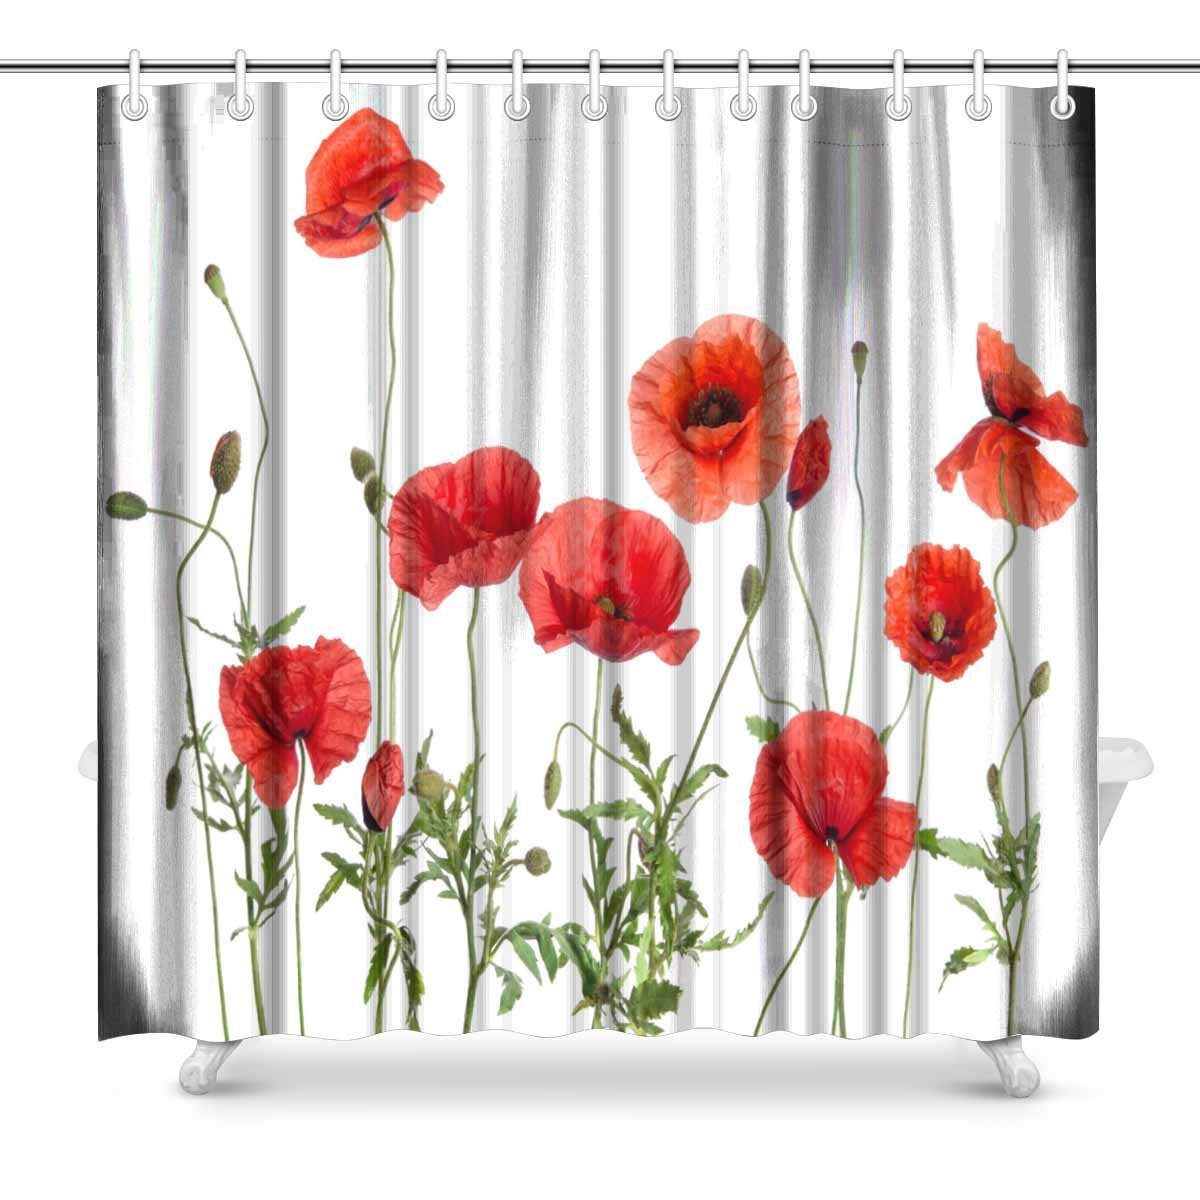 Aplysia Red Poppies Bathroom Shower Curtain Accessories 72 Inches